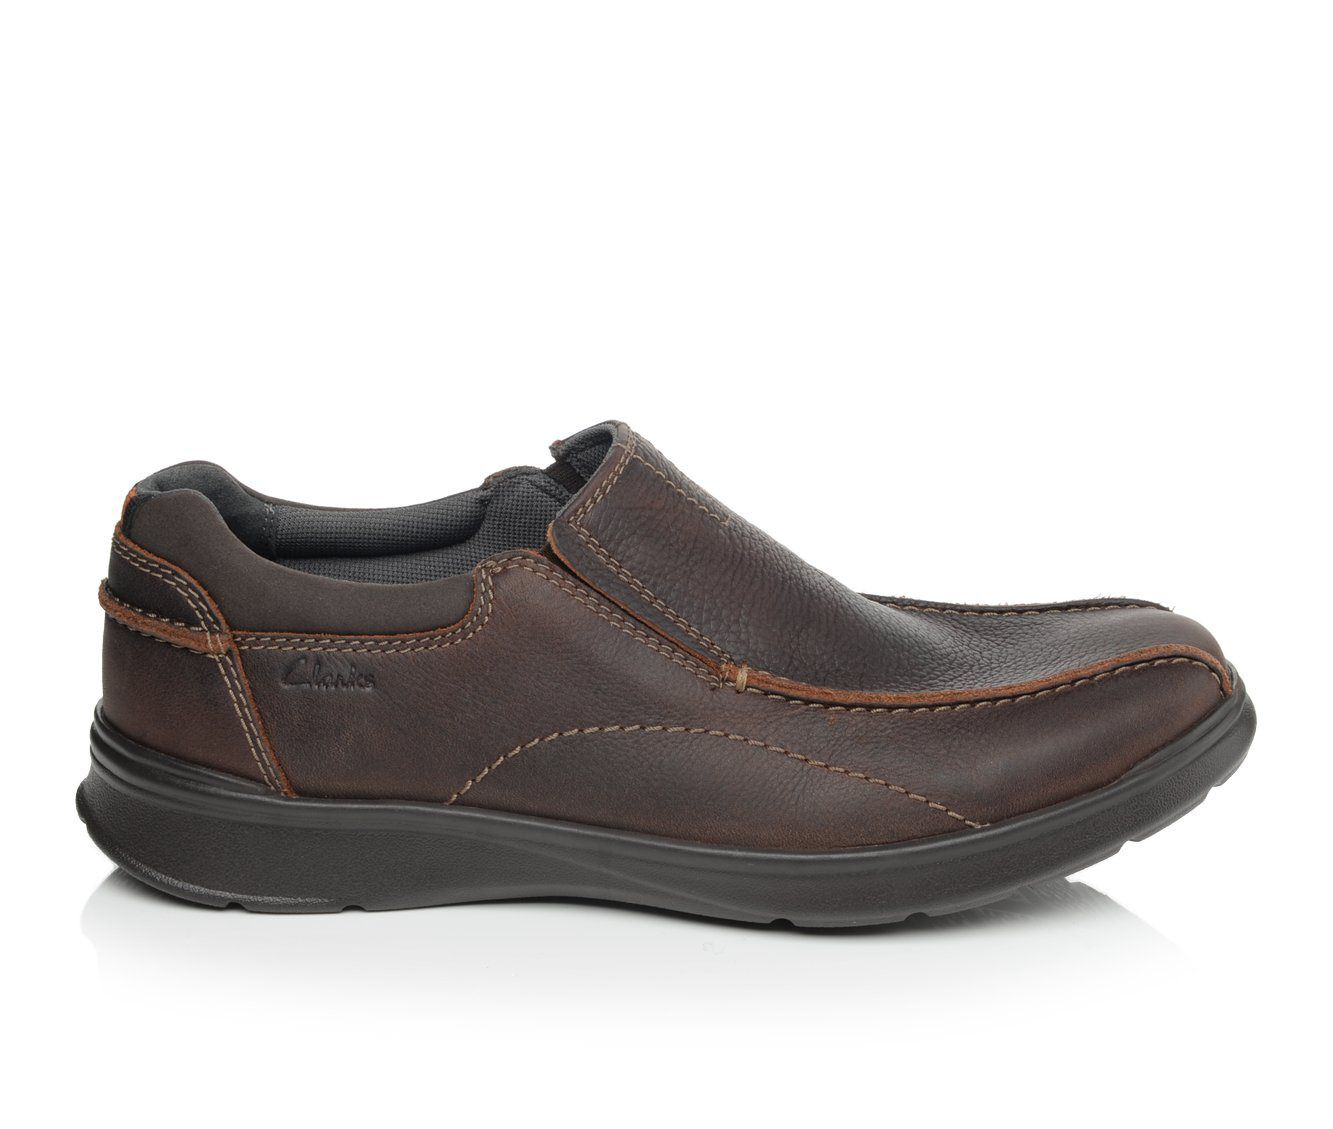 Forum on this topic: Clarks Mens Brown Leather Slip On Casual , clarks-mens-brown-leather-slip-on-casual/